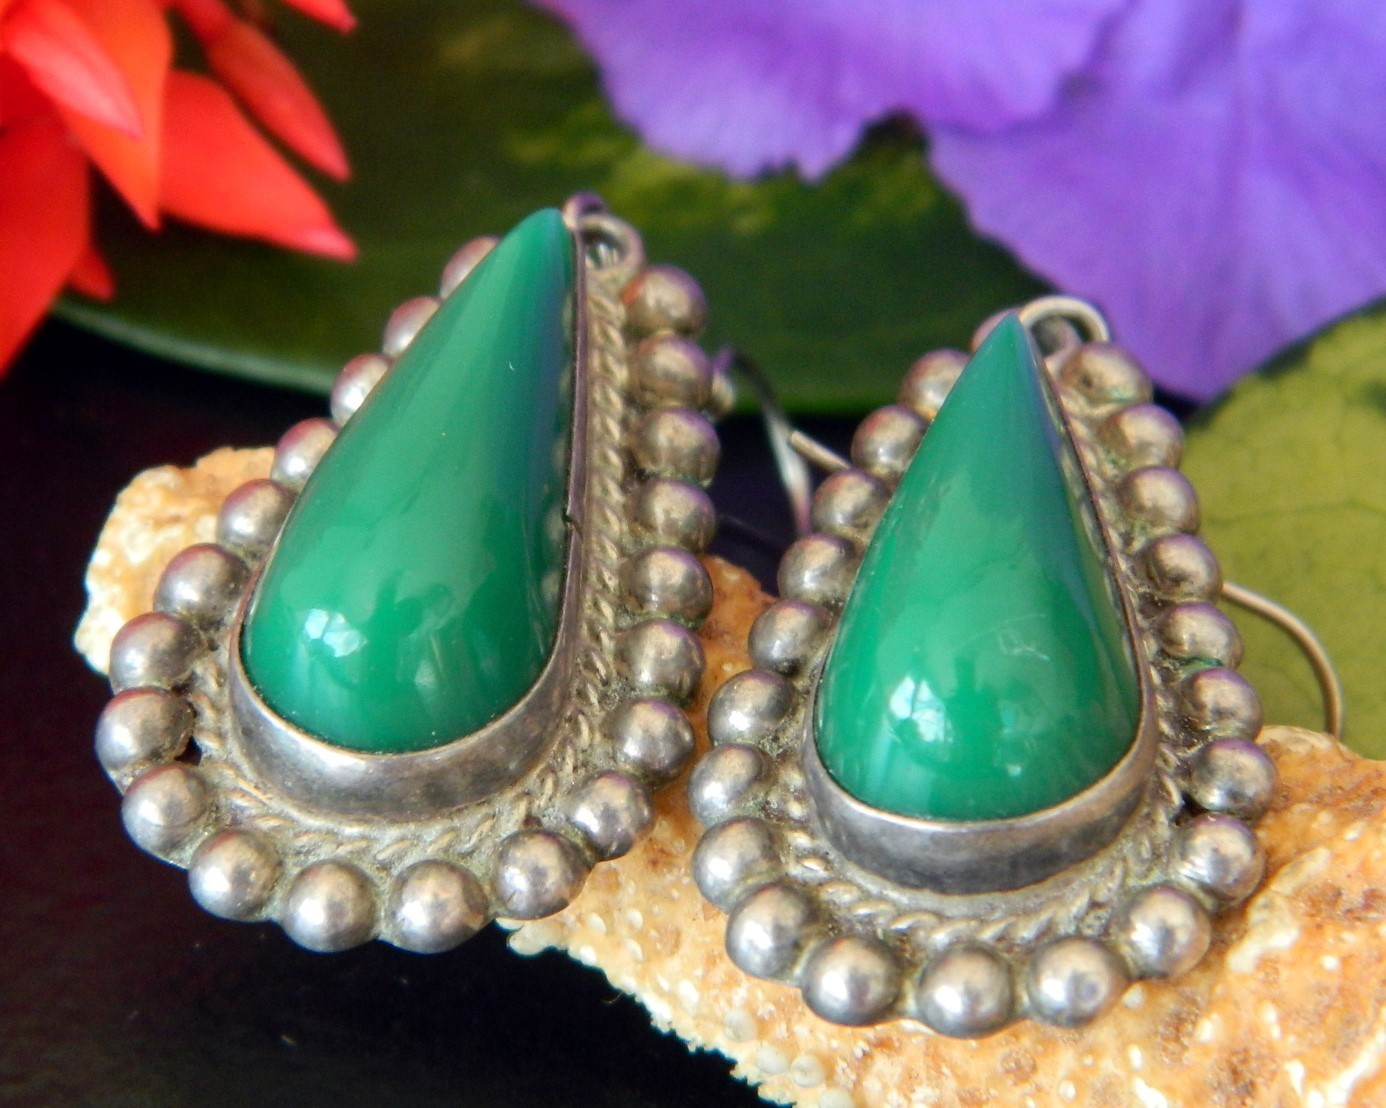 Vintage Diaz Santoyo CJB Earrings Sterling Silver Green Onyx Mexico